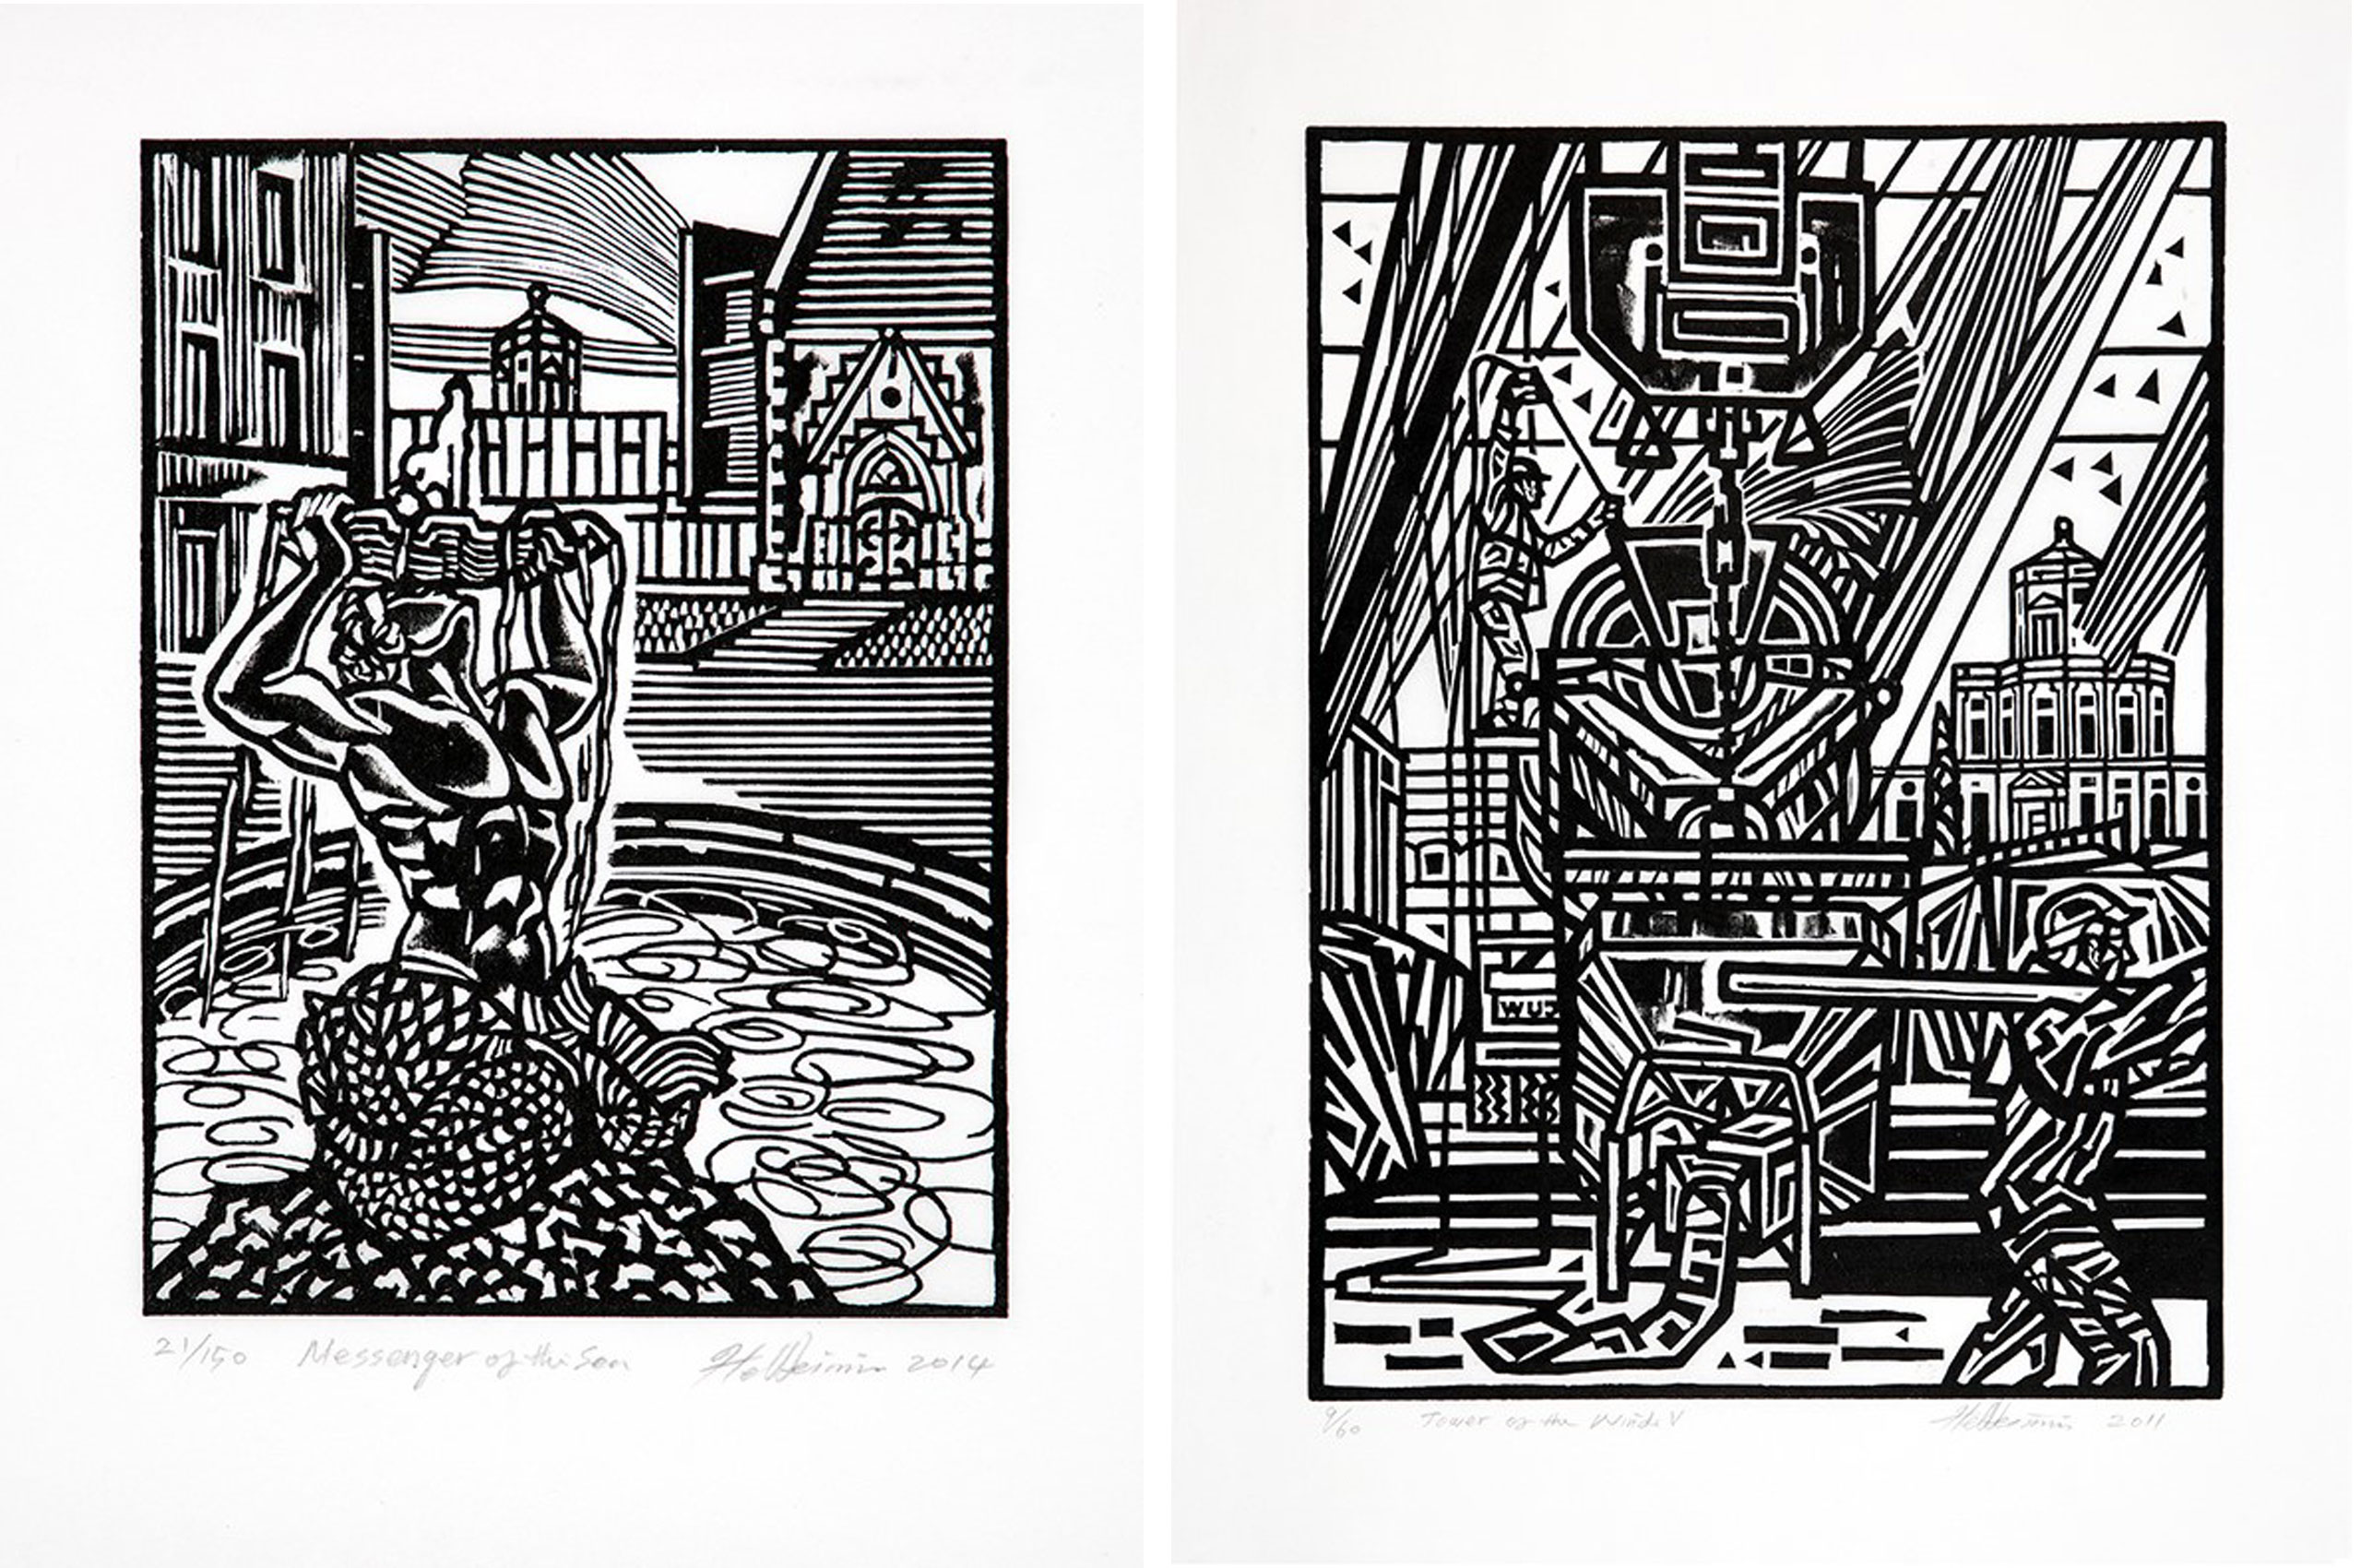 Two woodcut prints from Artist in Residence Weimin He, taken from his 2019 book, Tower of the Winds, Works on Paper by Weimin He (c) Weimin He